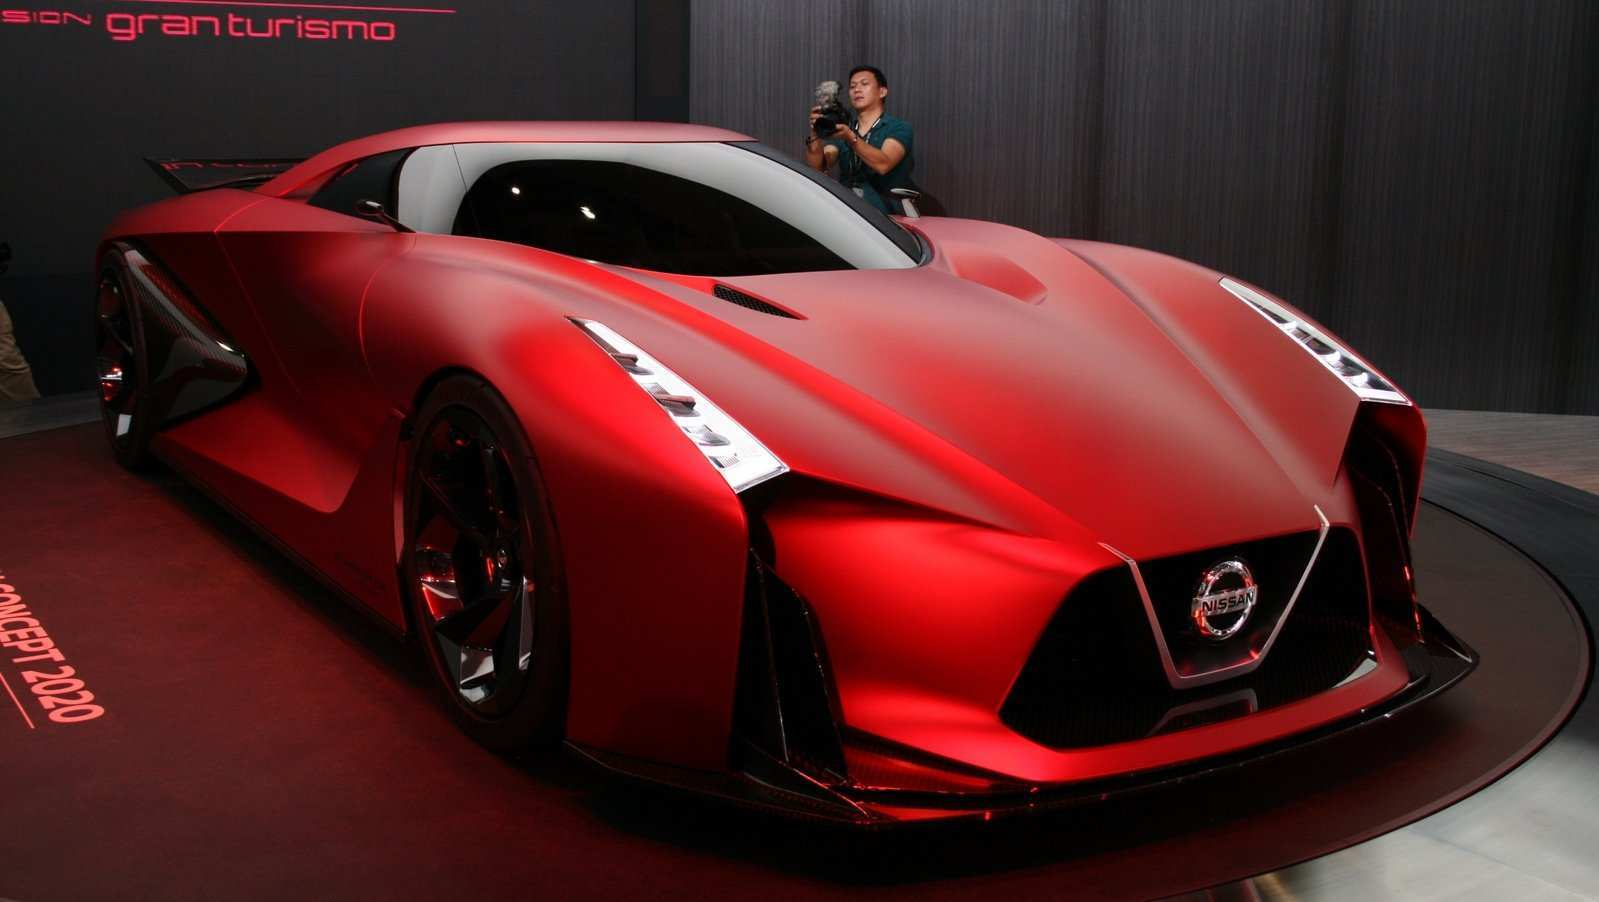 74 New Nissan Concept 2020 Price In India Release